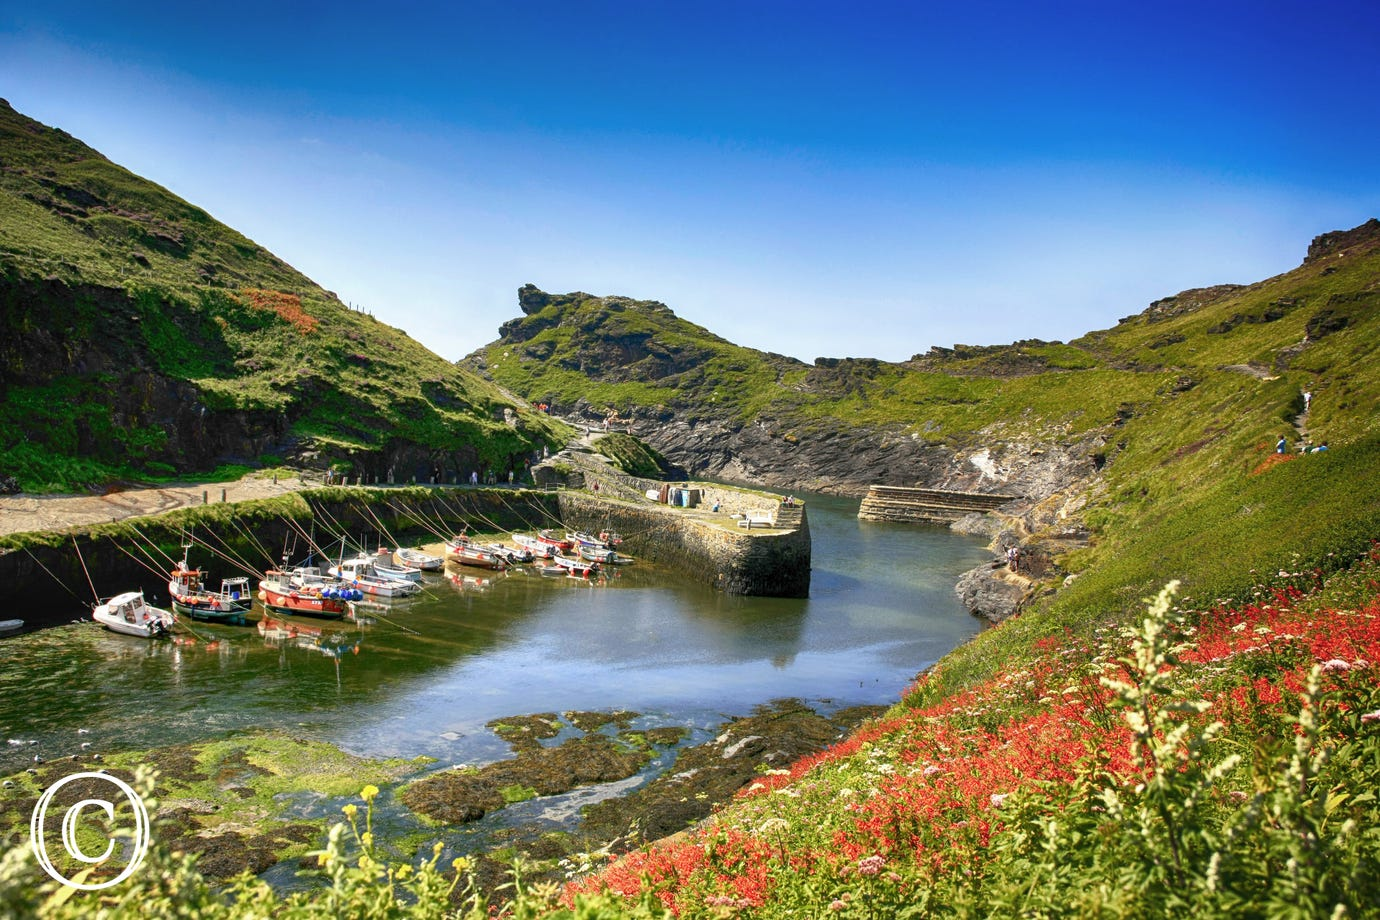 Nearby Boscastle, a fabulous day out